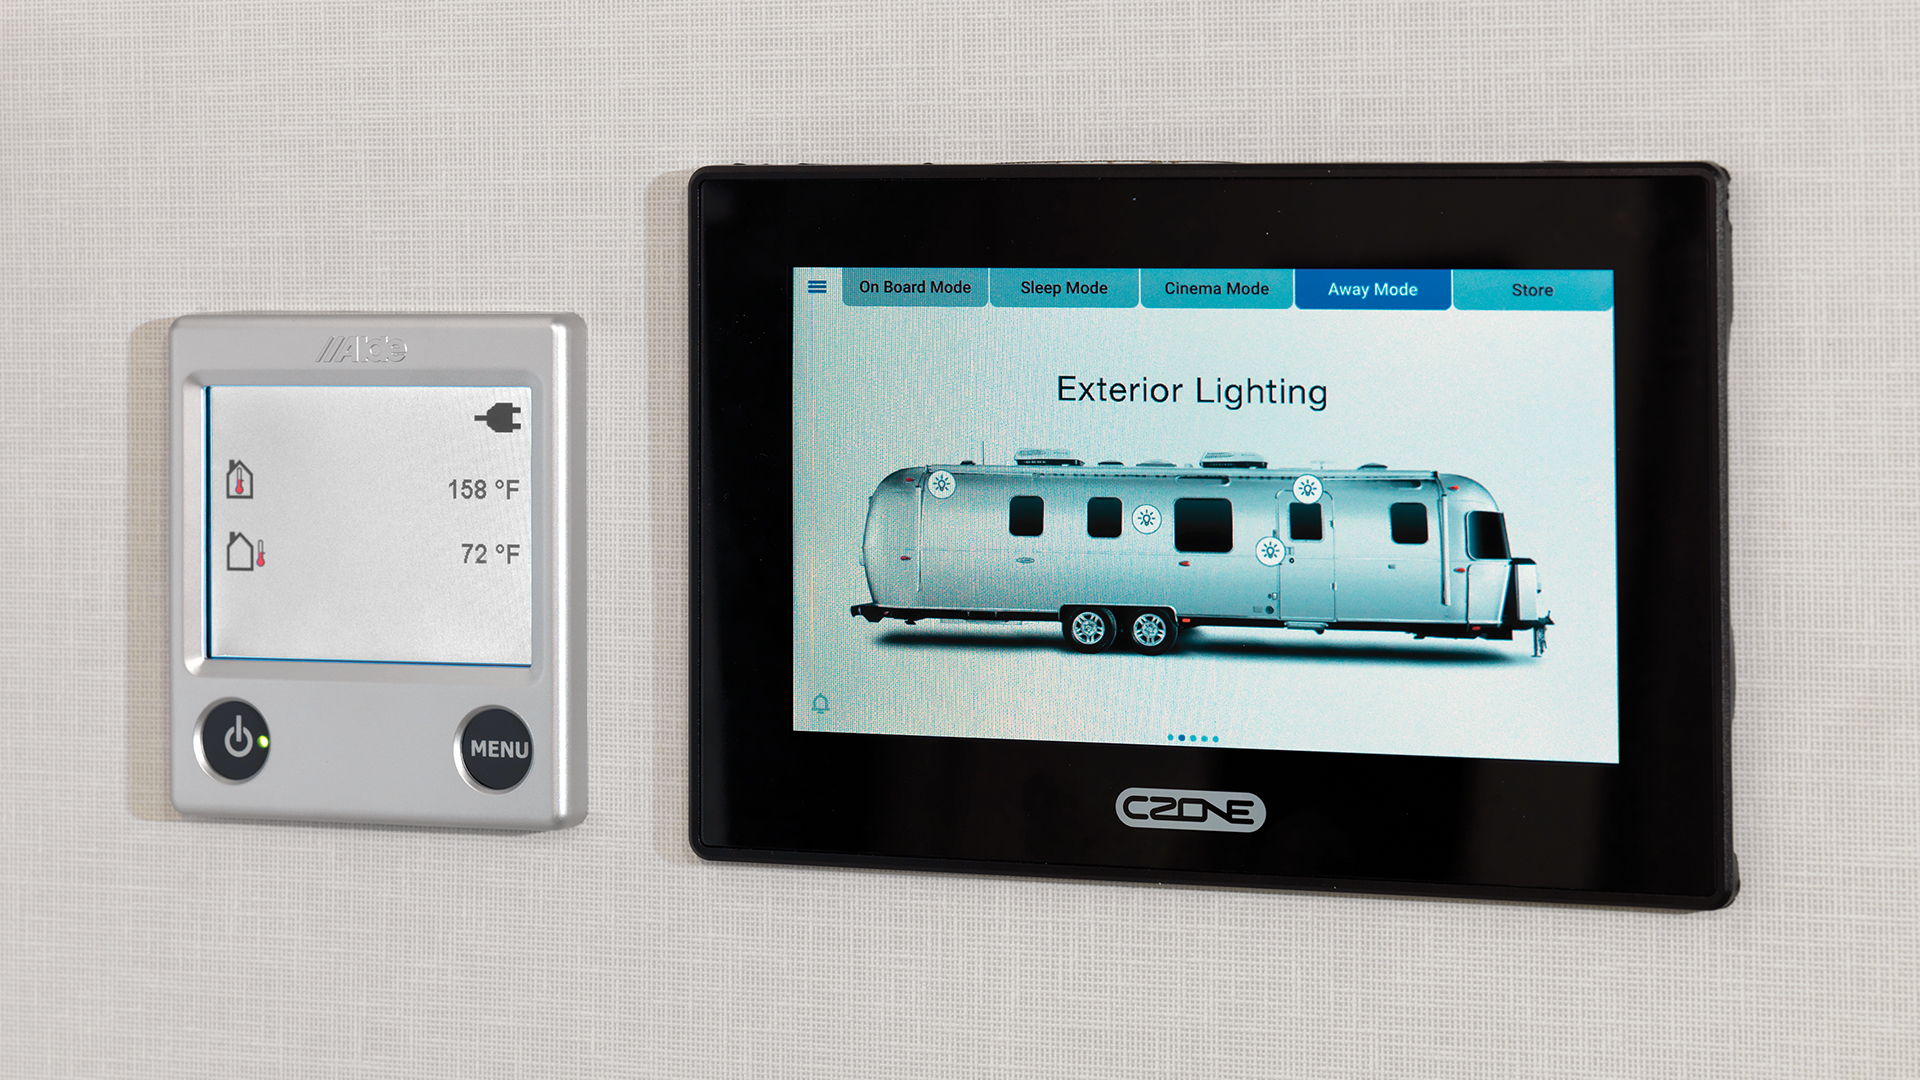 Airstream-Smart-Control-CZone-7-Inch-Screen-Exterior-Lighting